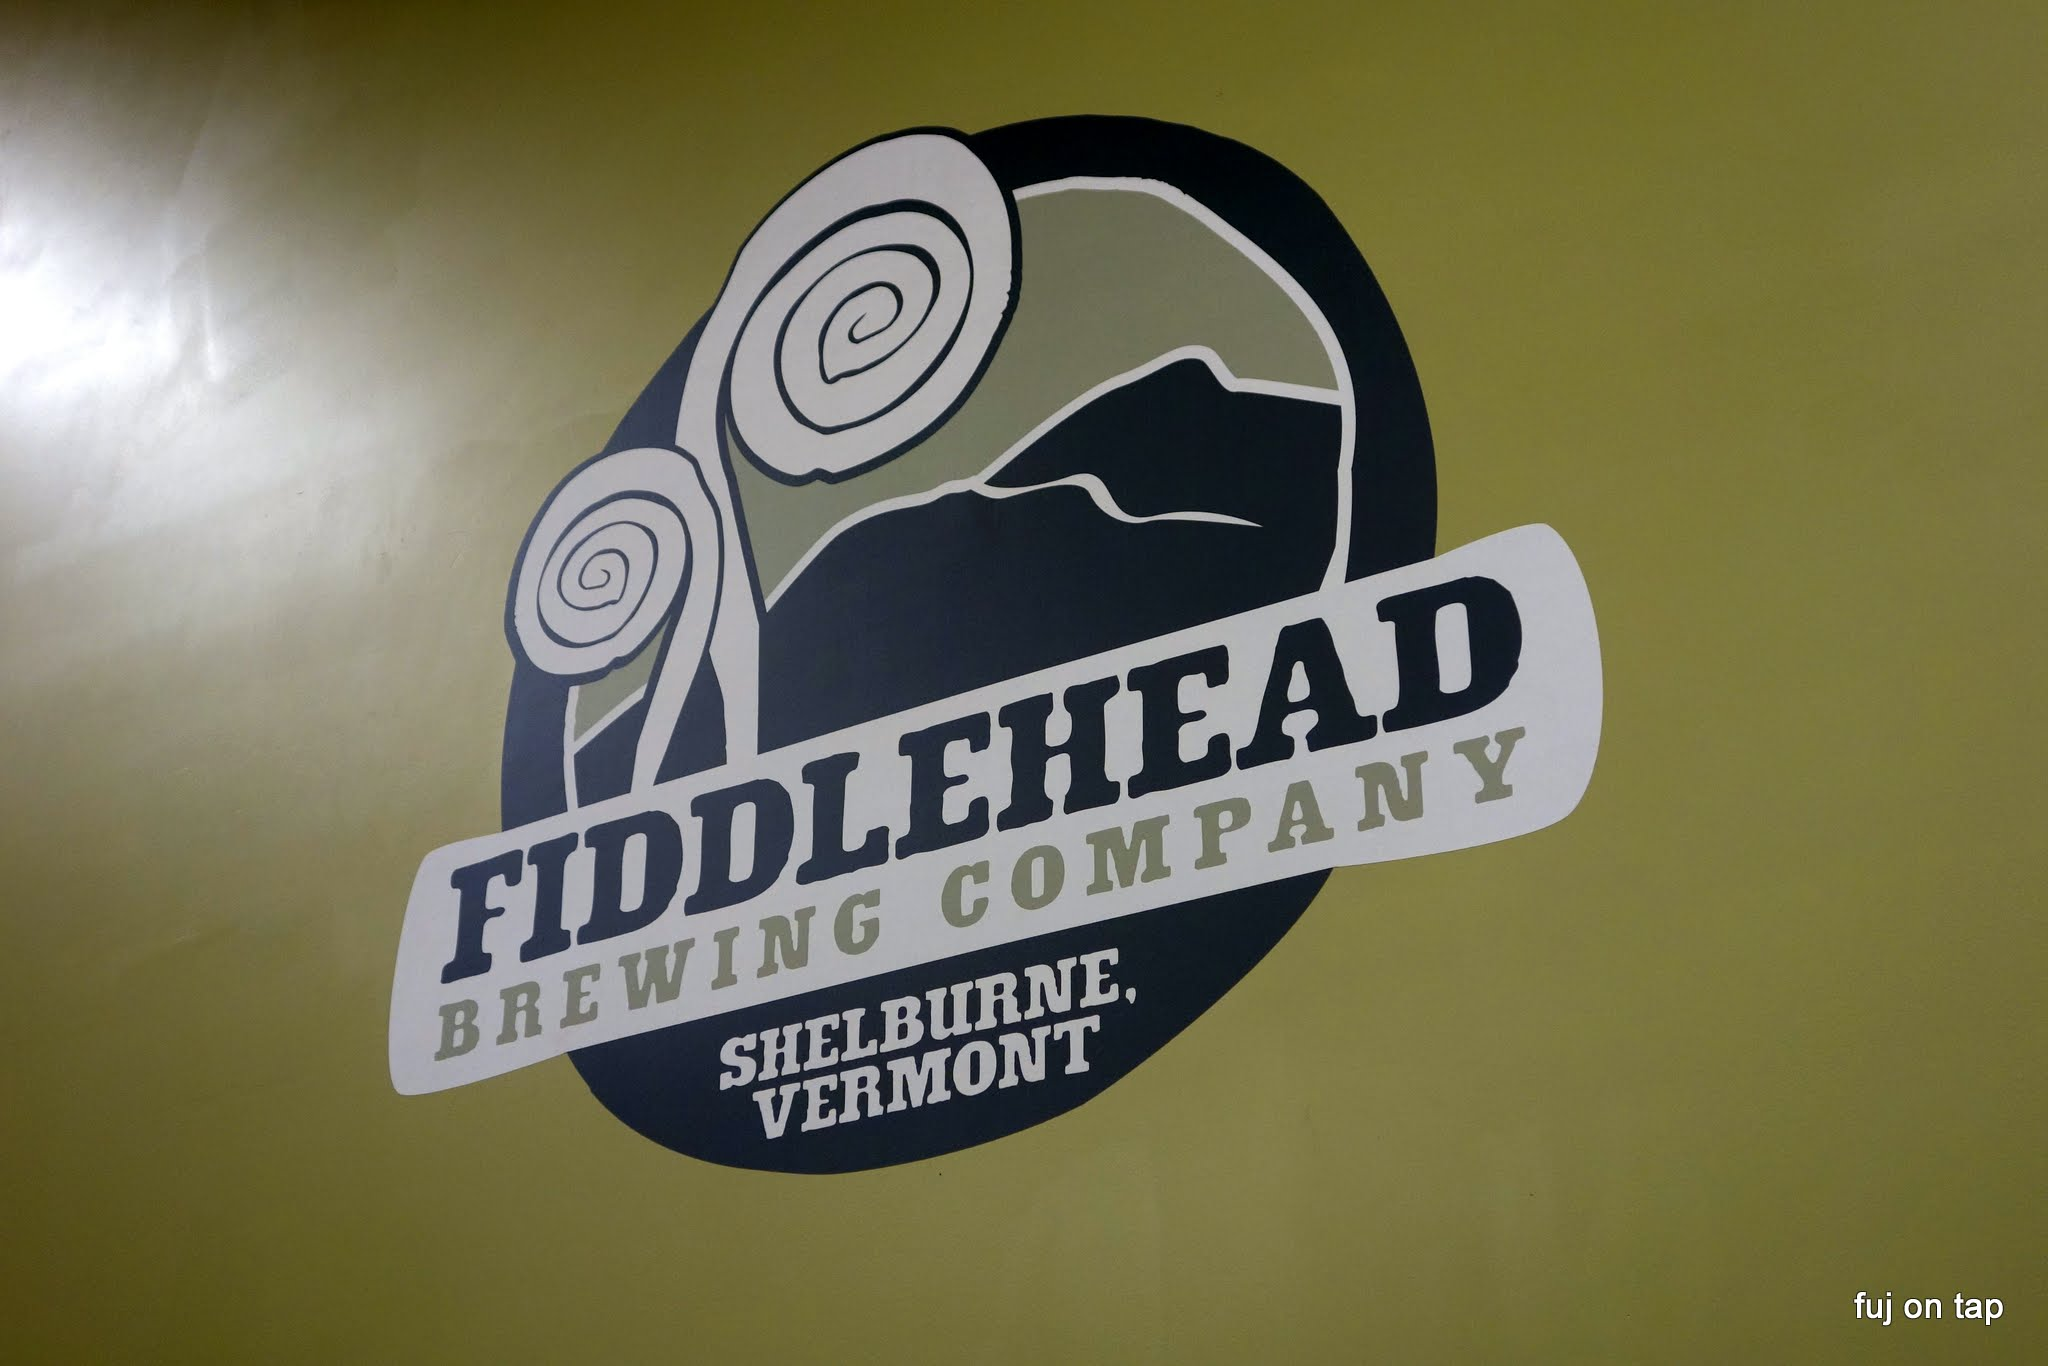 Fiddlehead Brewing Coompany